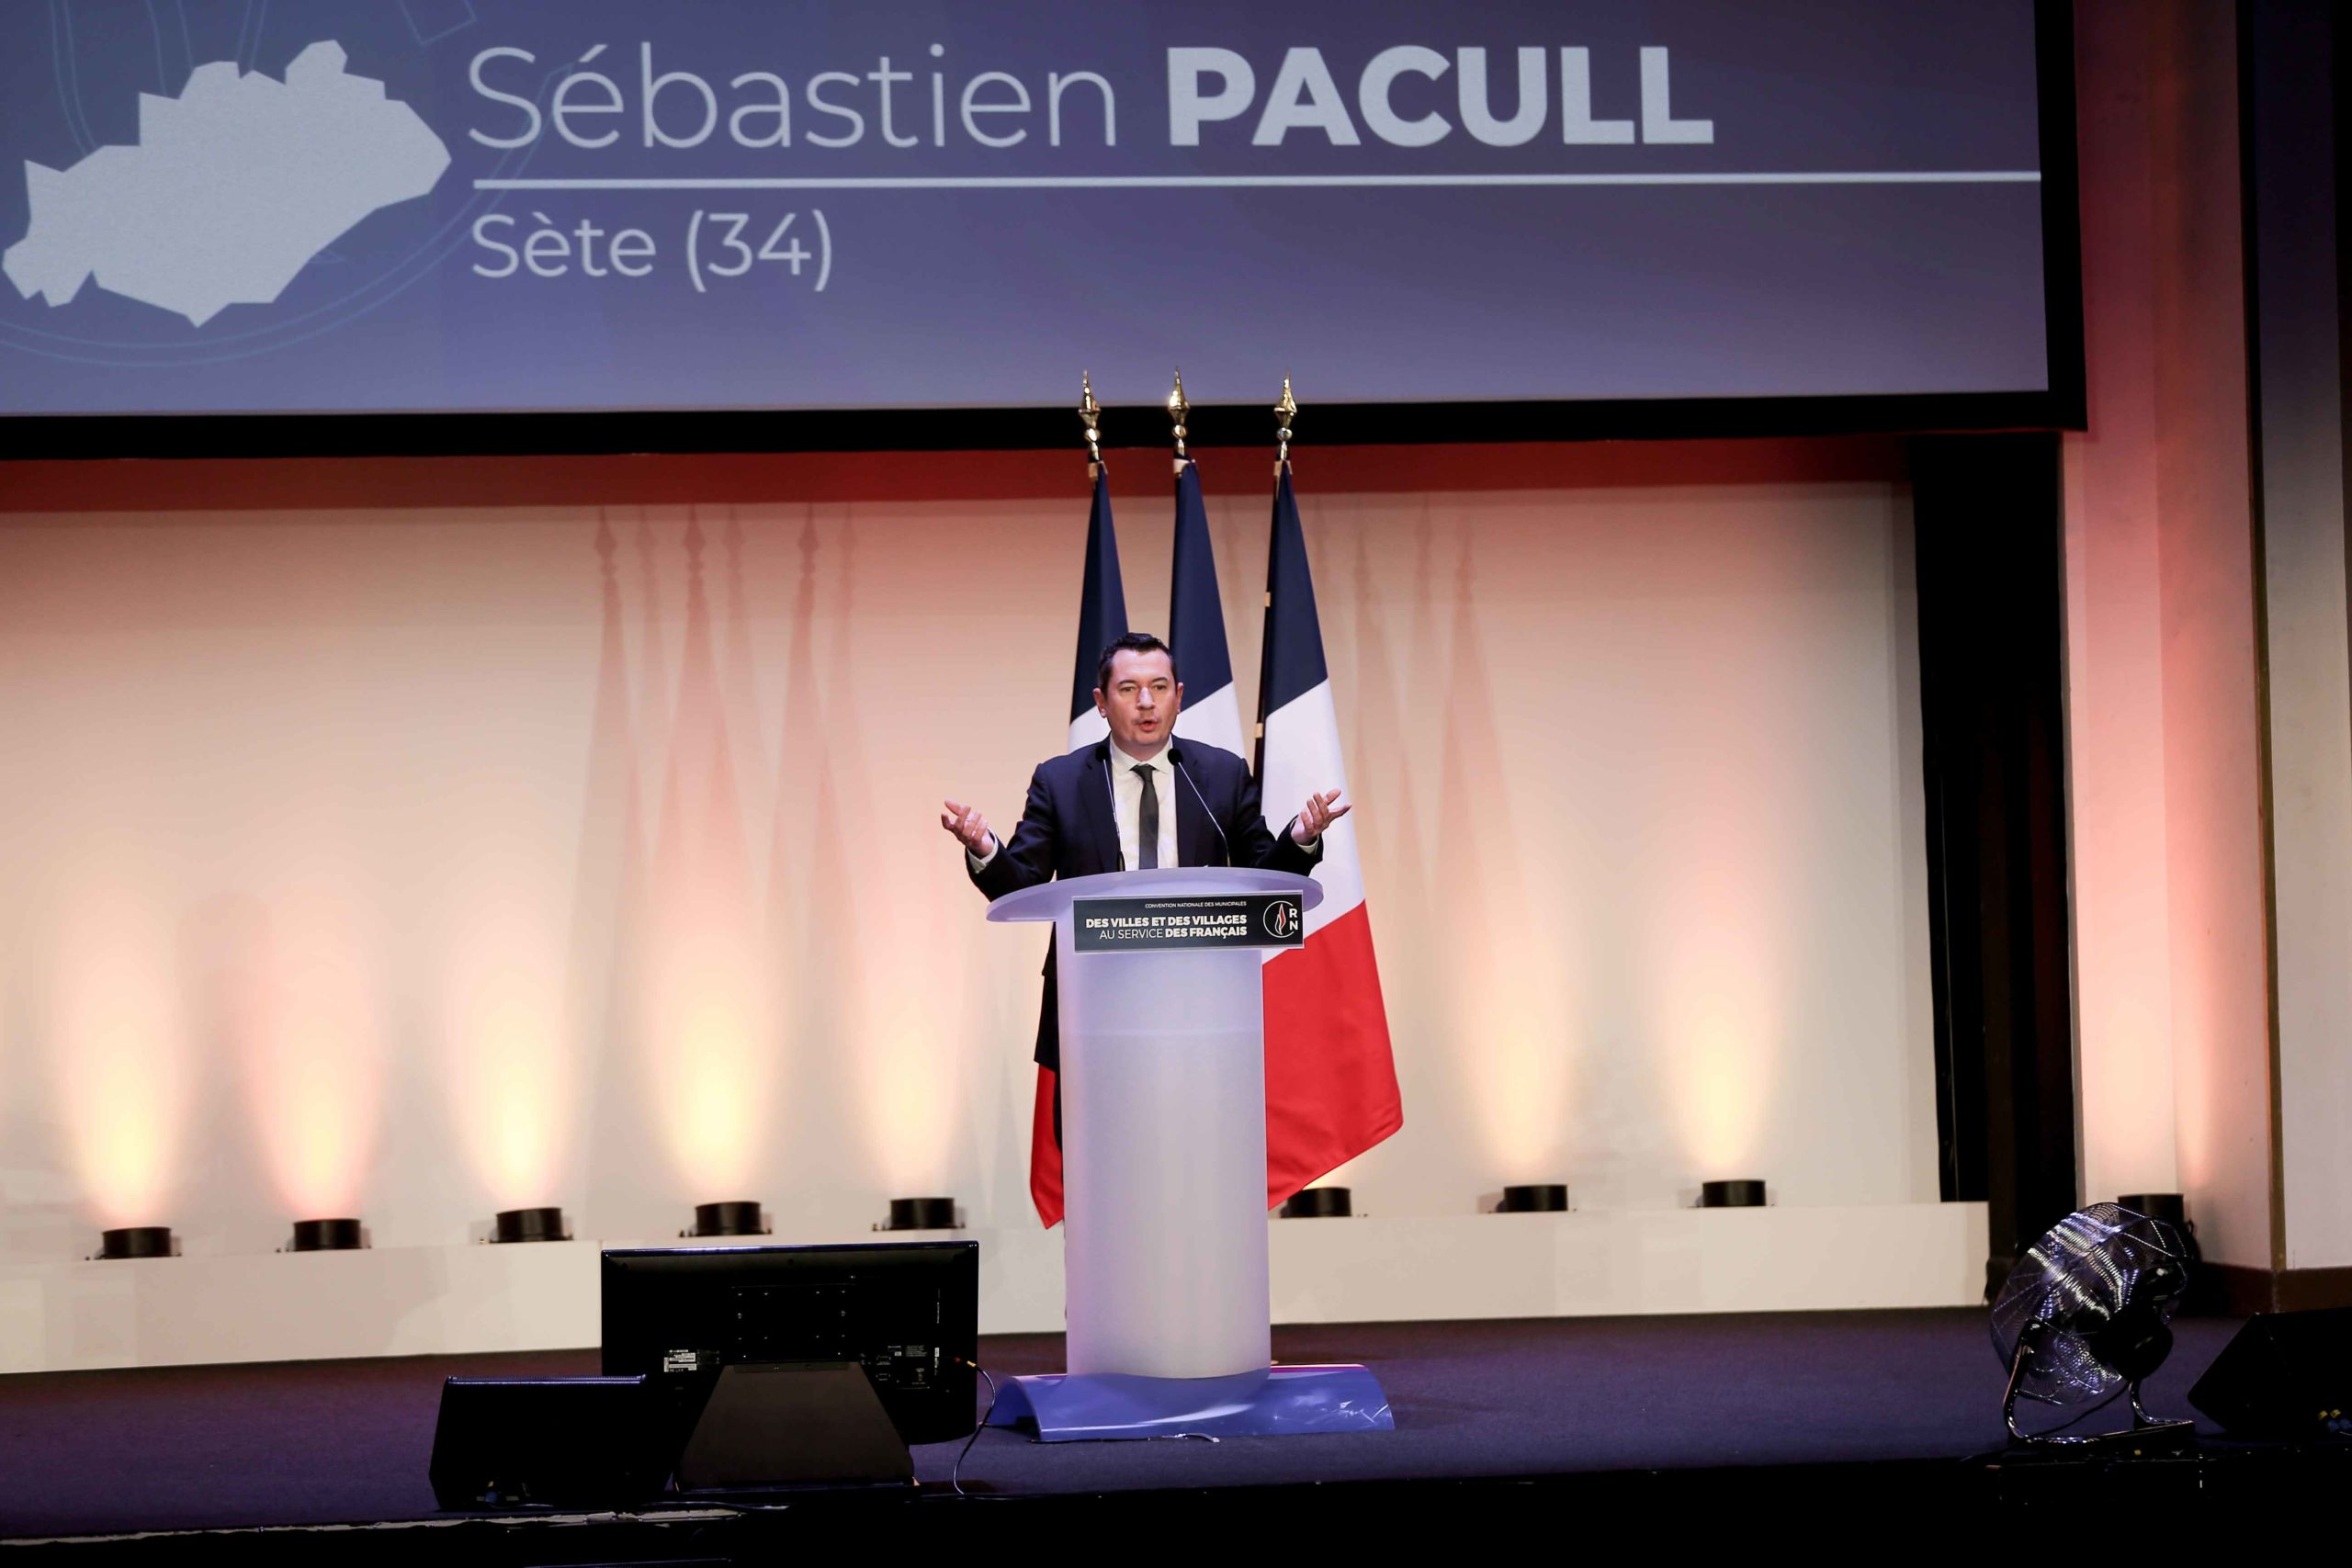 Sébastien Pacull, the Rassemblement national (RN) candidate in the forthcoming mayoral election in Sète (Hérault), speaks in Paris, on January 12, 2020, during a meeting to launch the RN campaign candidates for the next municipal elections.  The 2020 Fr